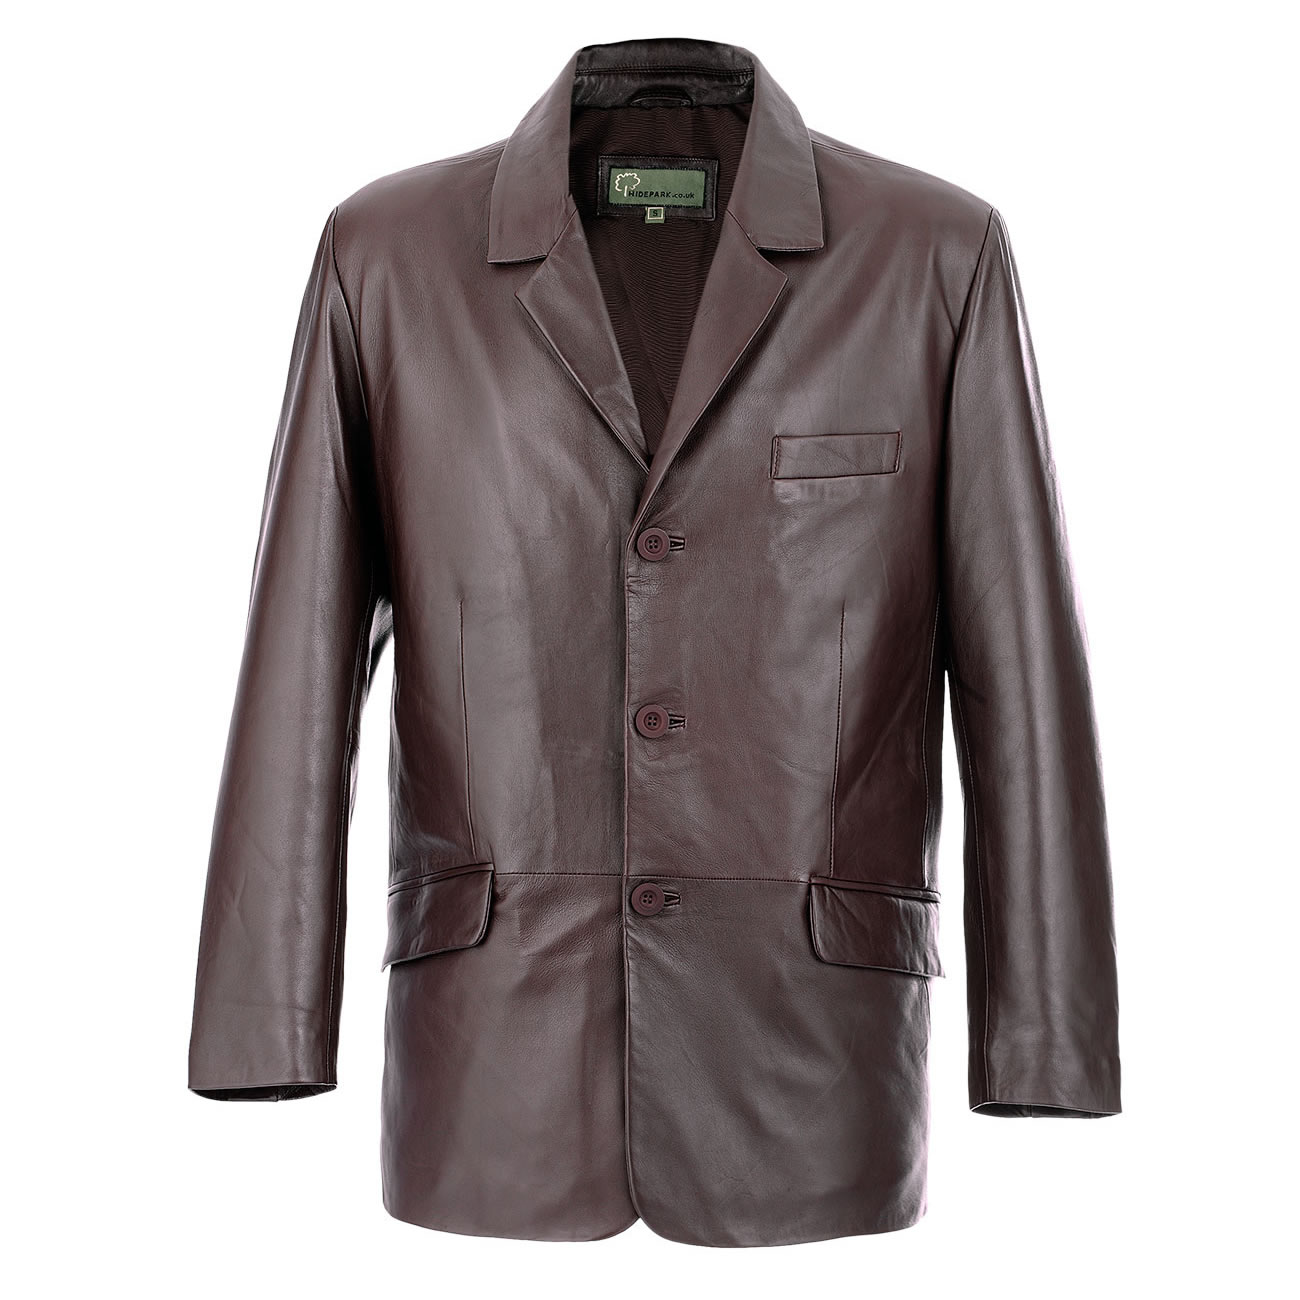 men's brown leather blazer